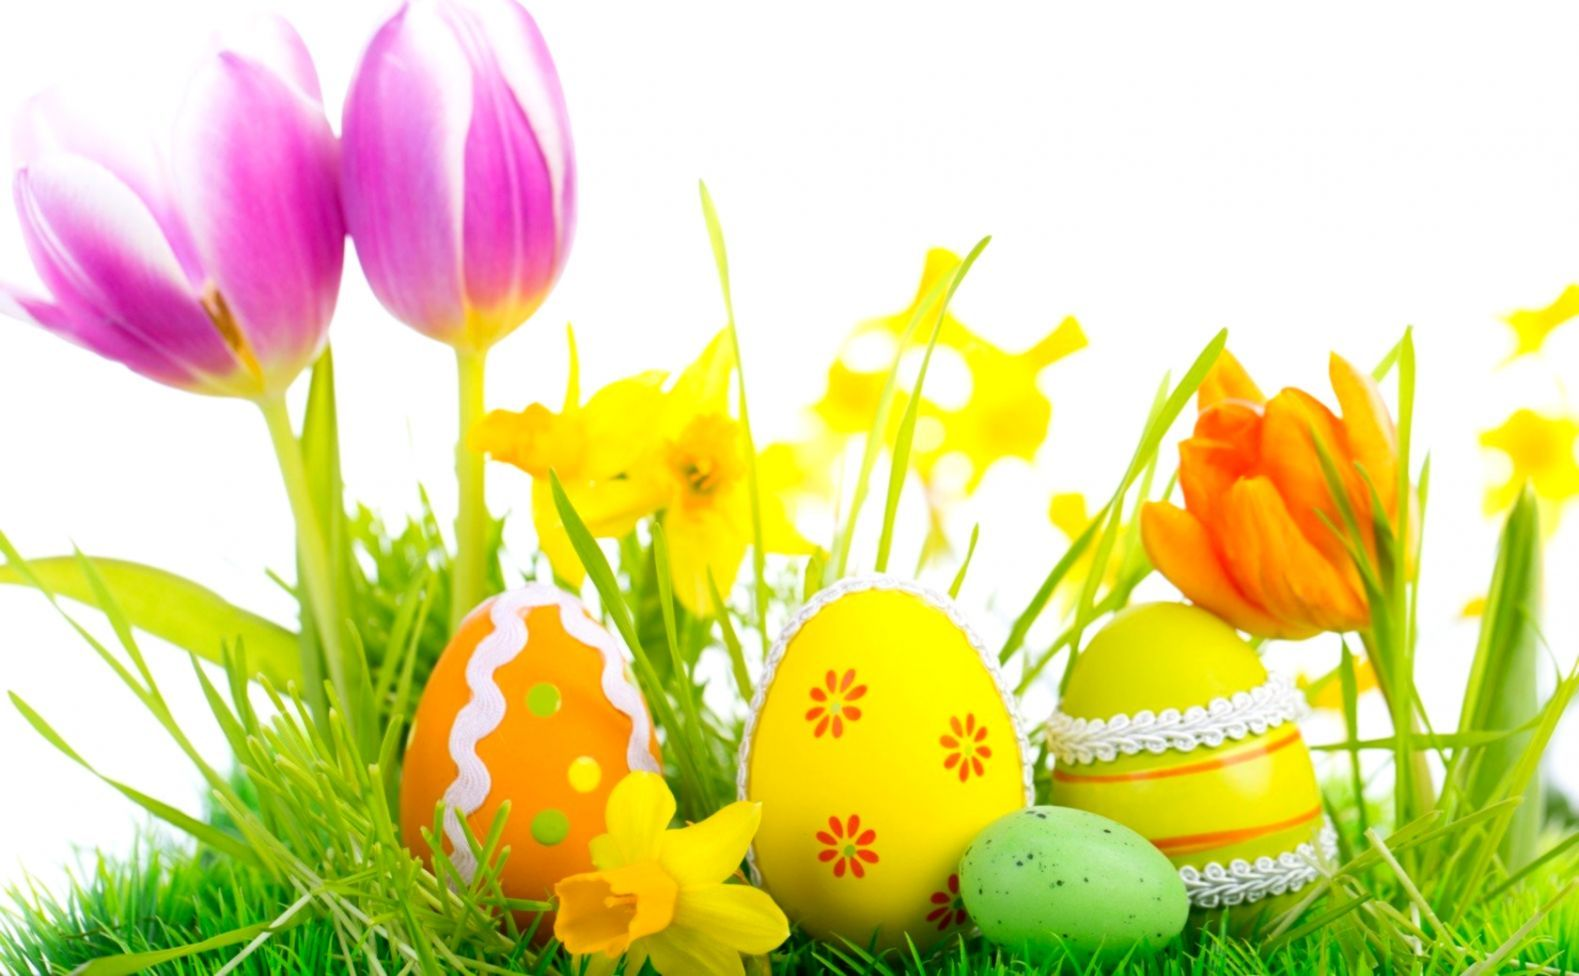 1579x976 Wallpaper Hd Flower Egg Colors | Pack Wallpapers